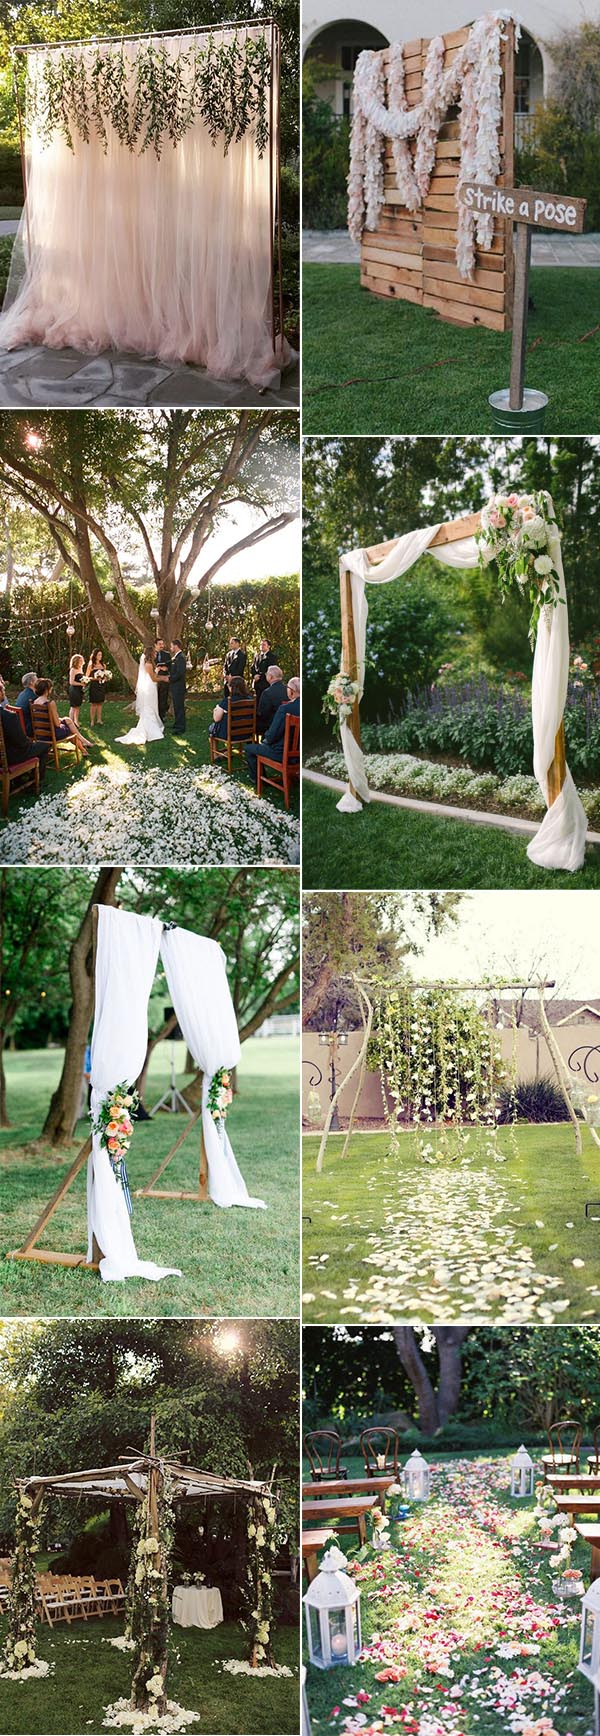 30 Sweet Ideas For Intimate Backyard Outdoor Weddings regarding 12 Genius Designs of How to Build Backyard Weddings Ideas